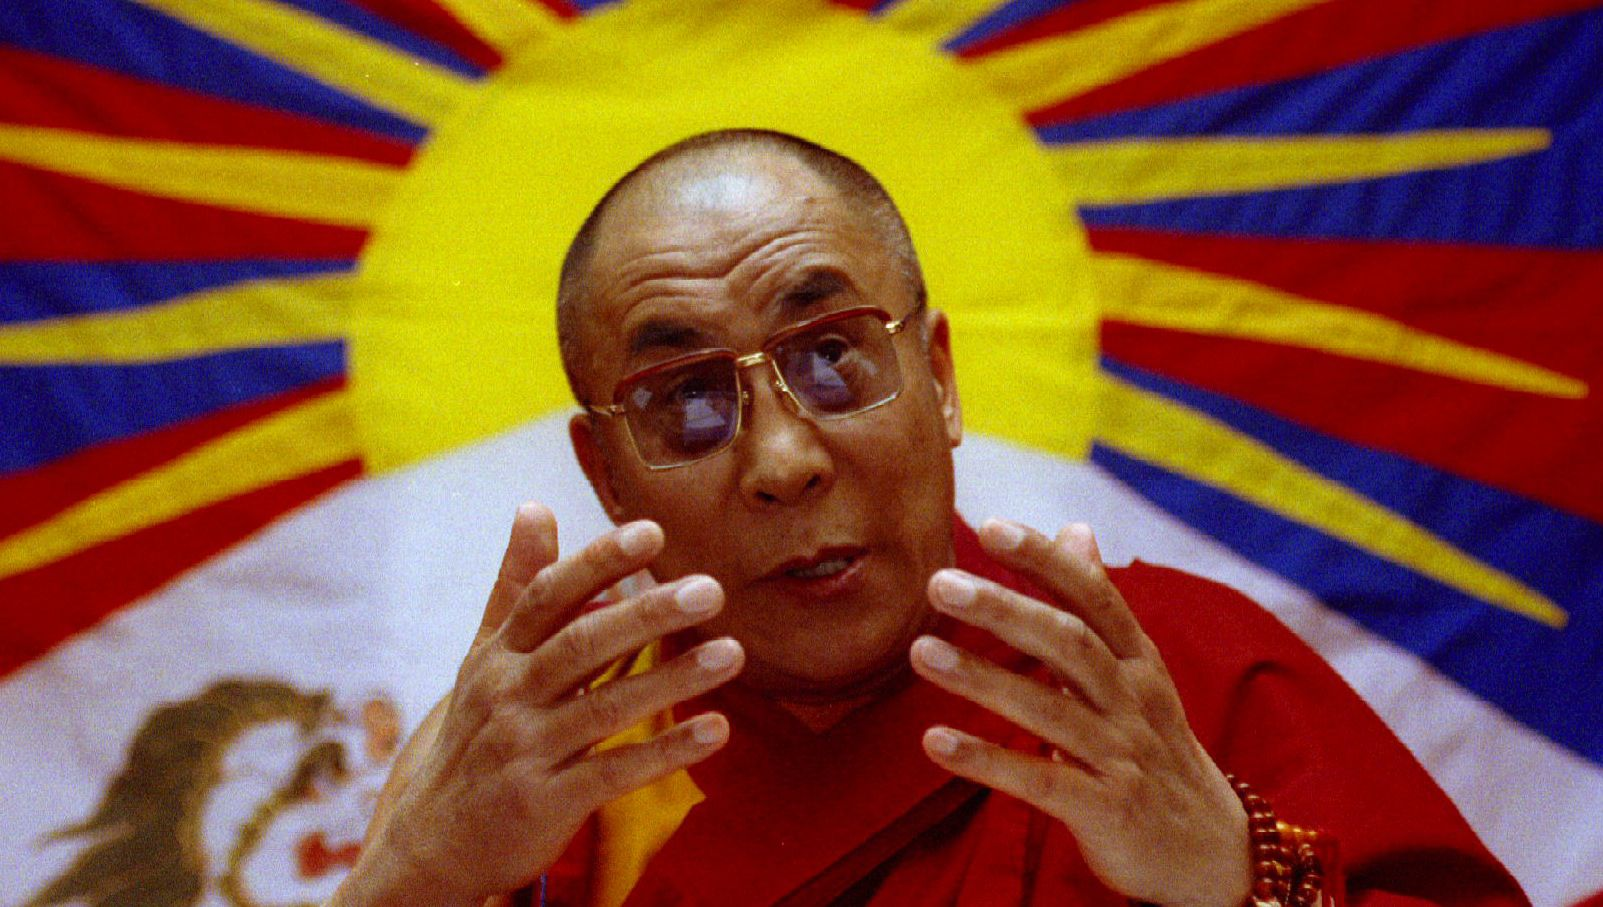 The Dalai Lama speaks at a press conference May 12, 1993 during the second week of his visit to Britain